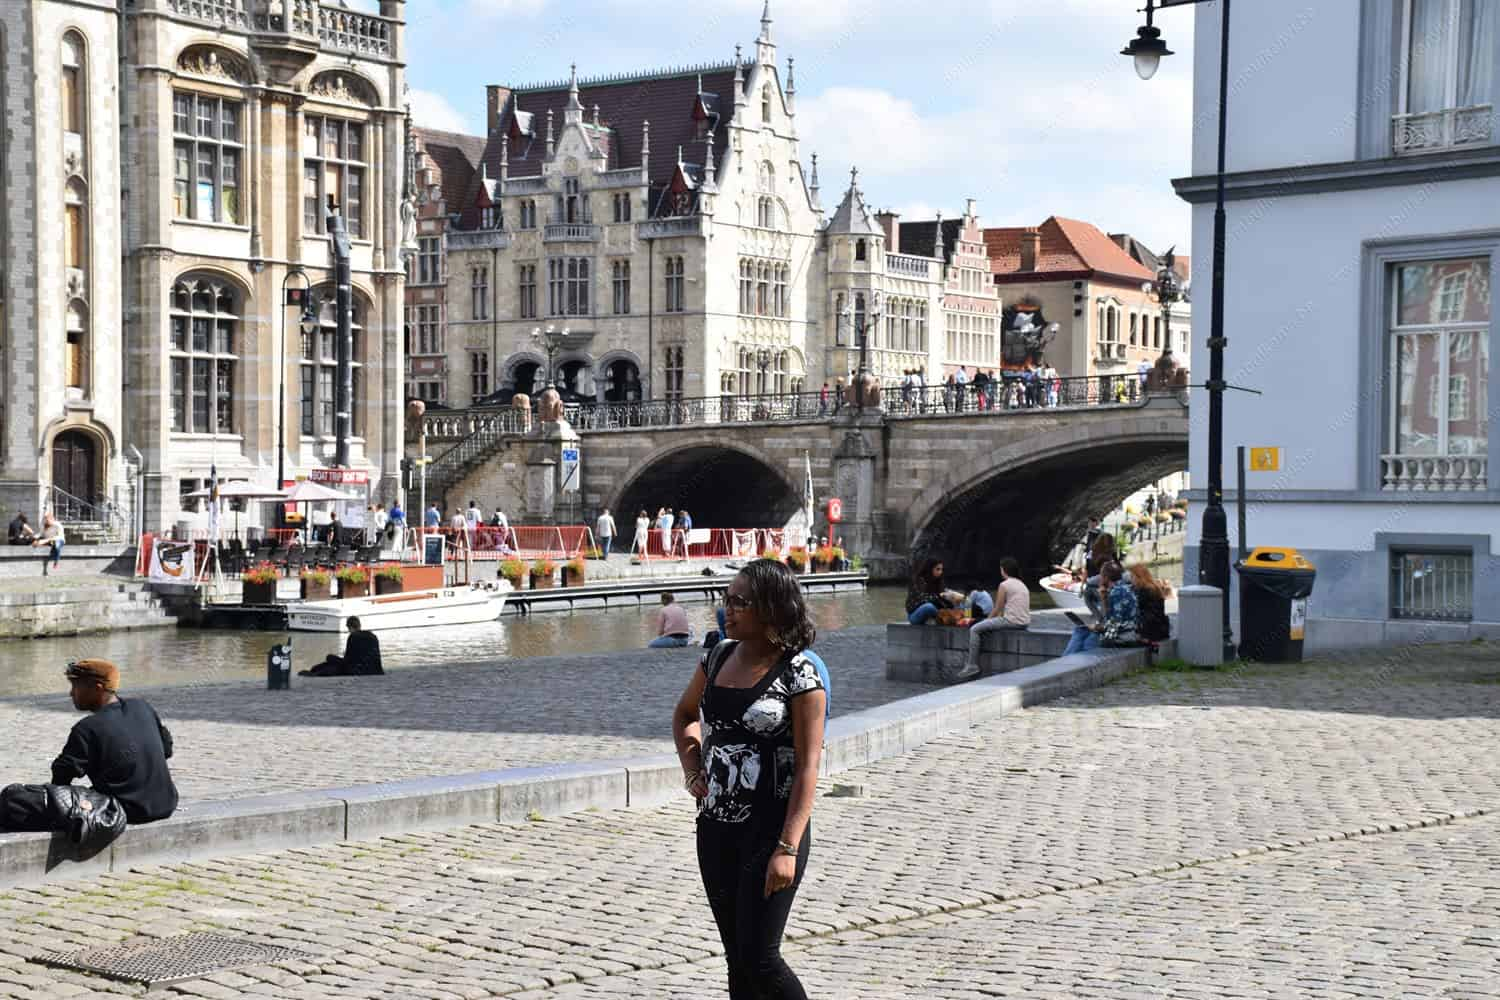 St. Michael Bridge in Ghent